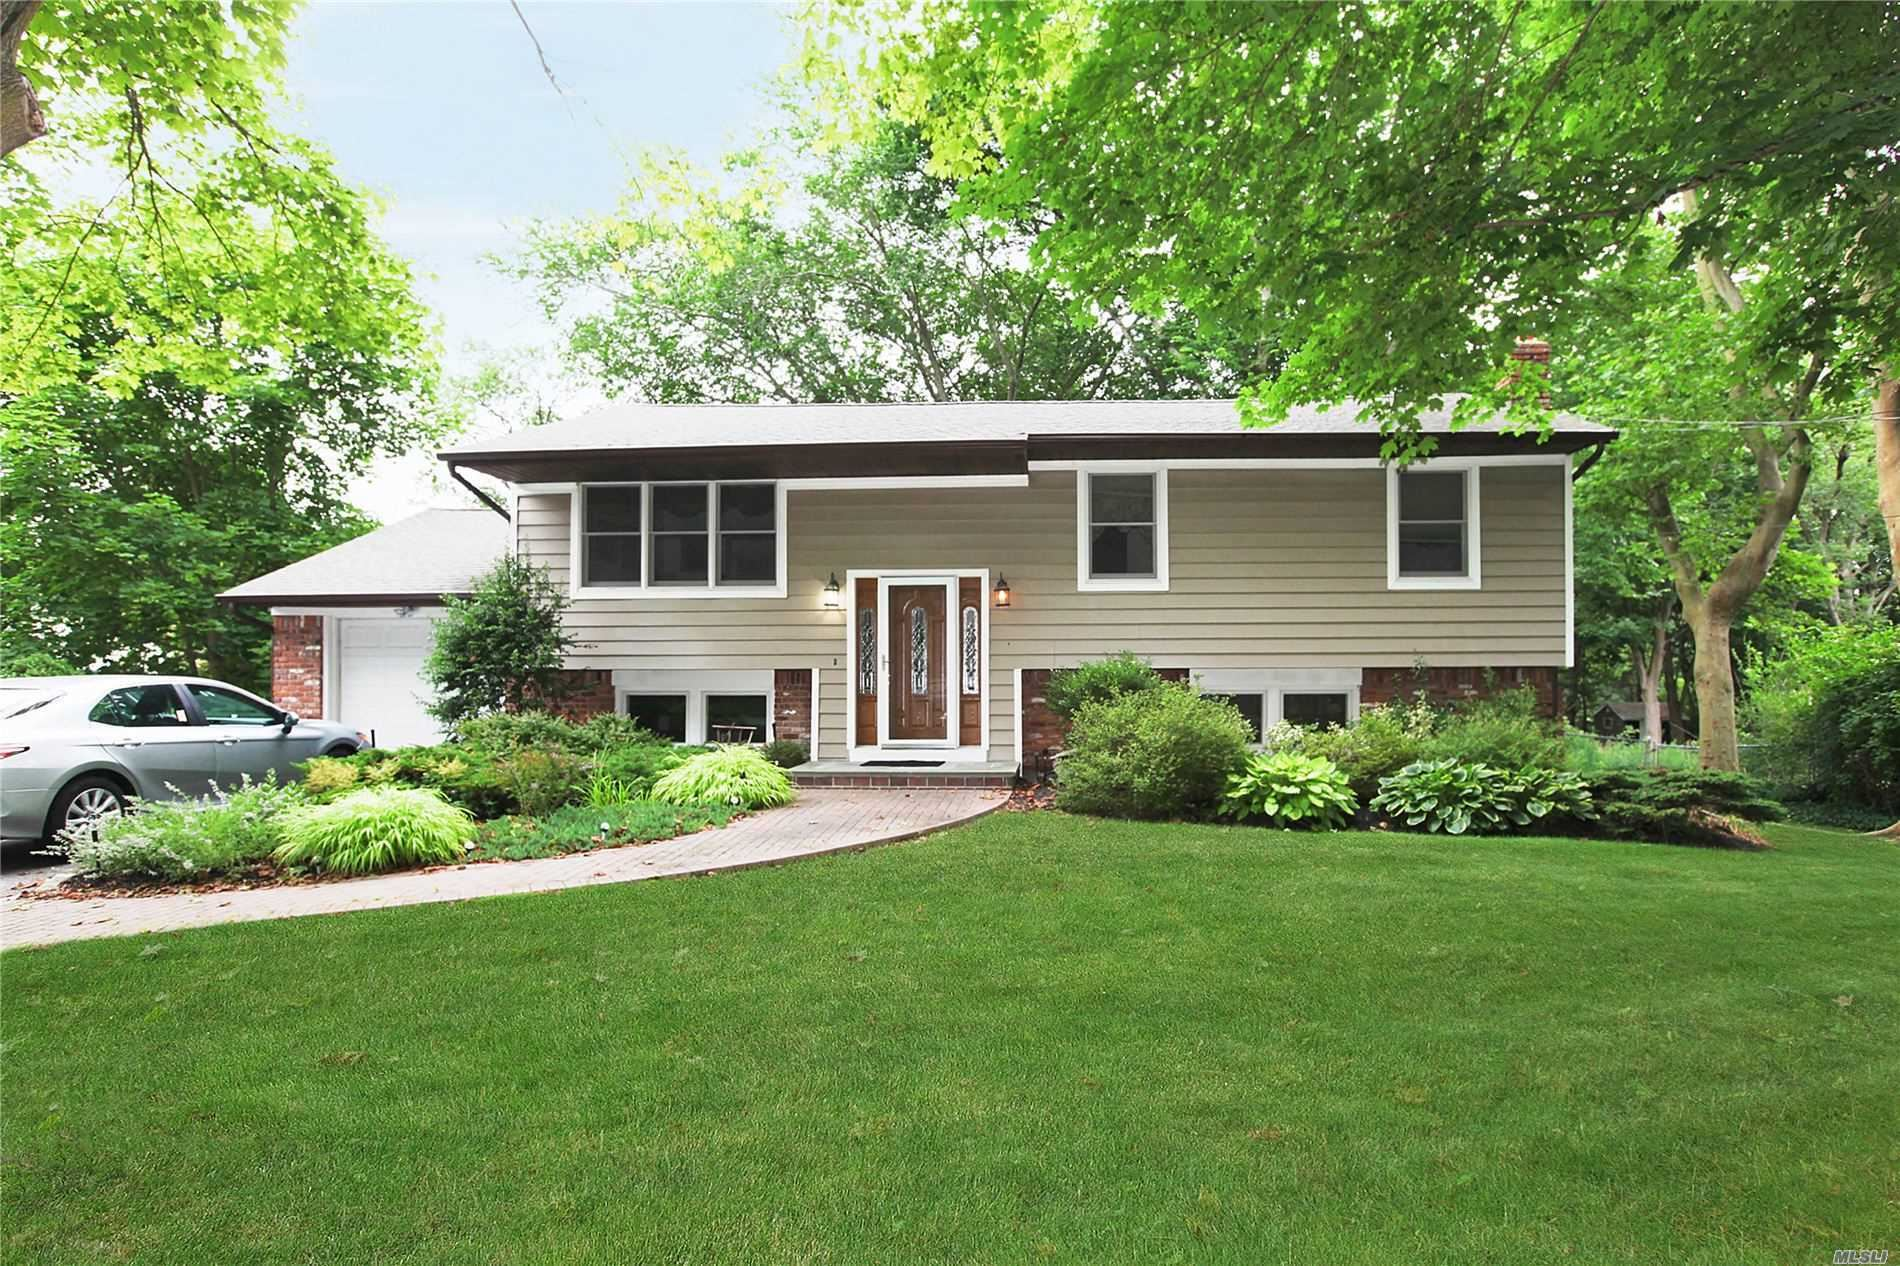 281 Oakwood Rd, Oakdale, NY 11769 - MLS#: 3231819